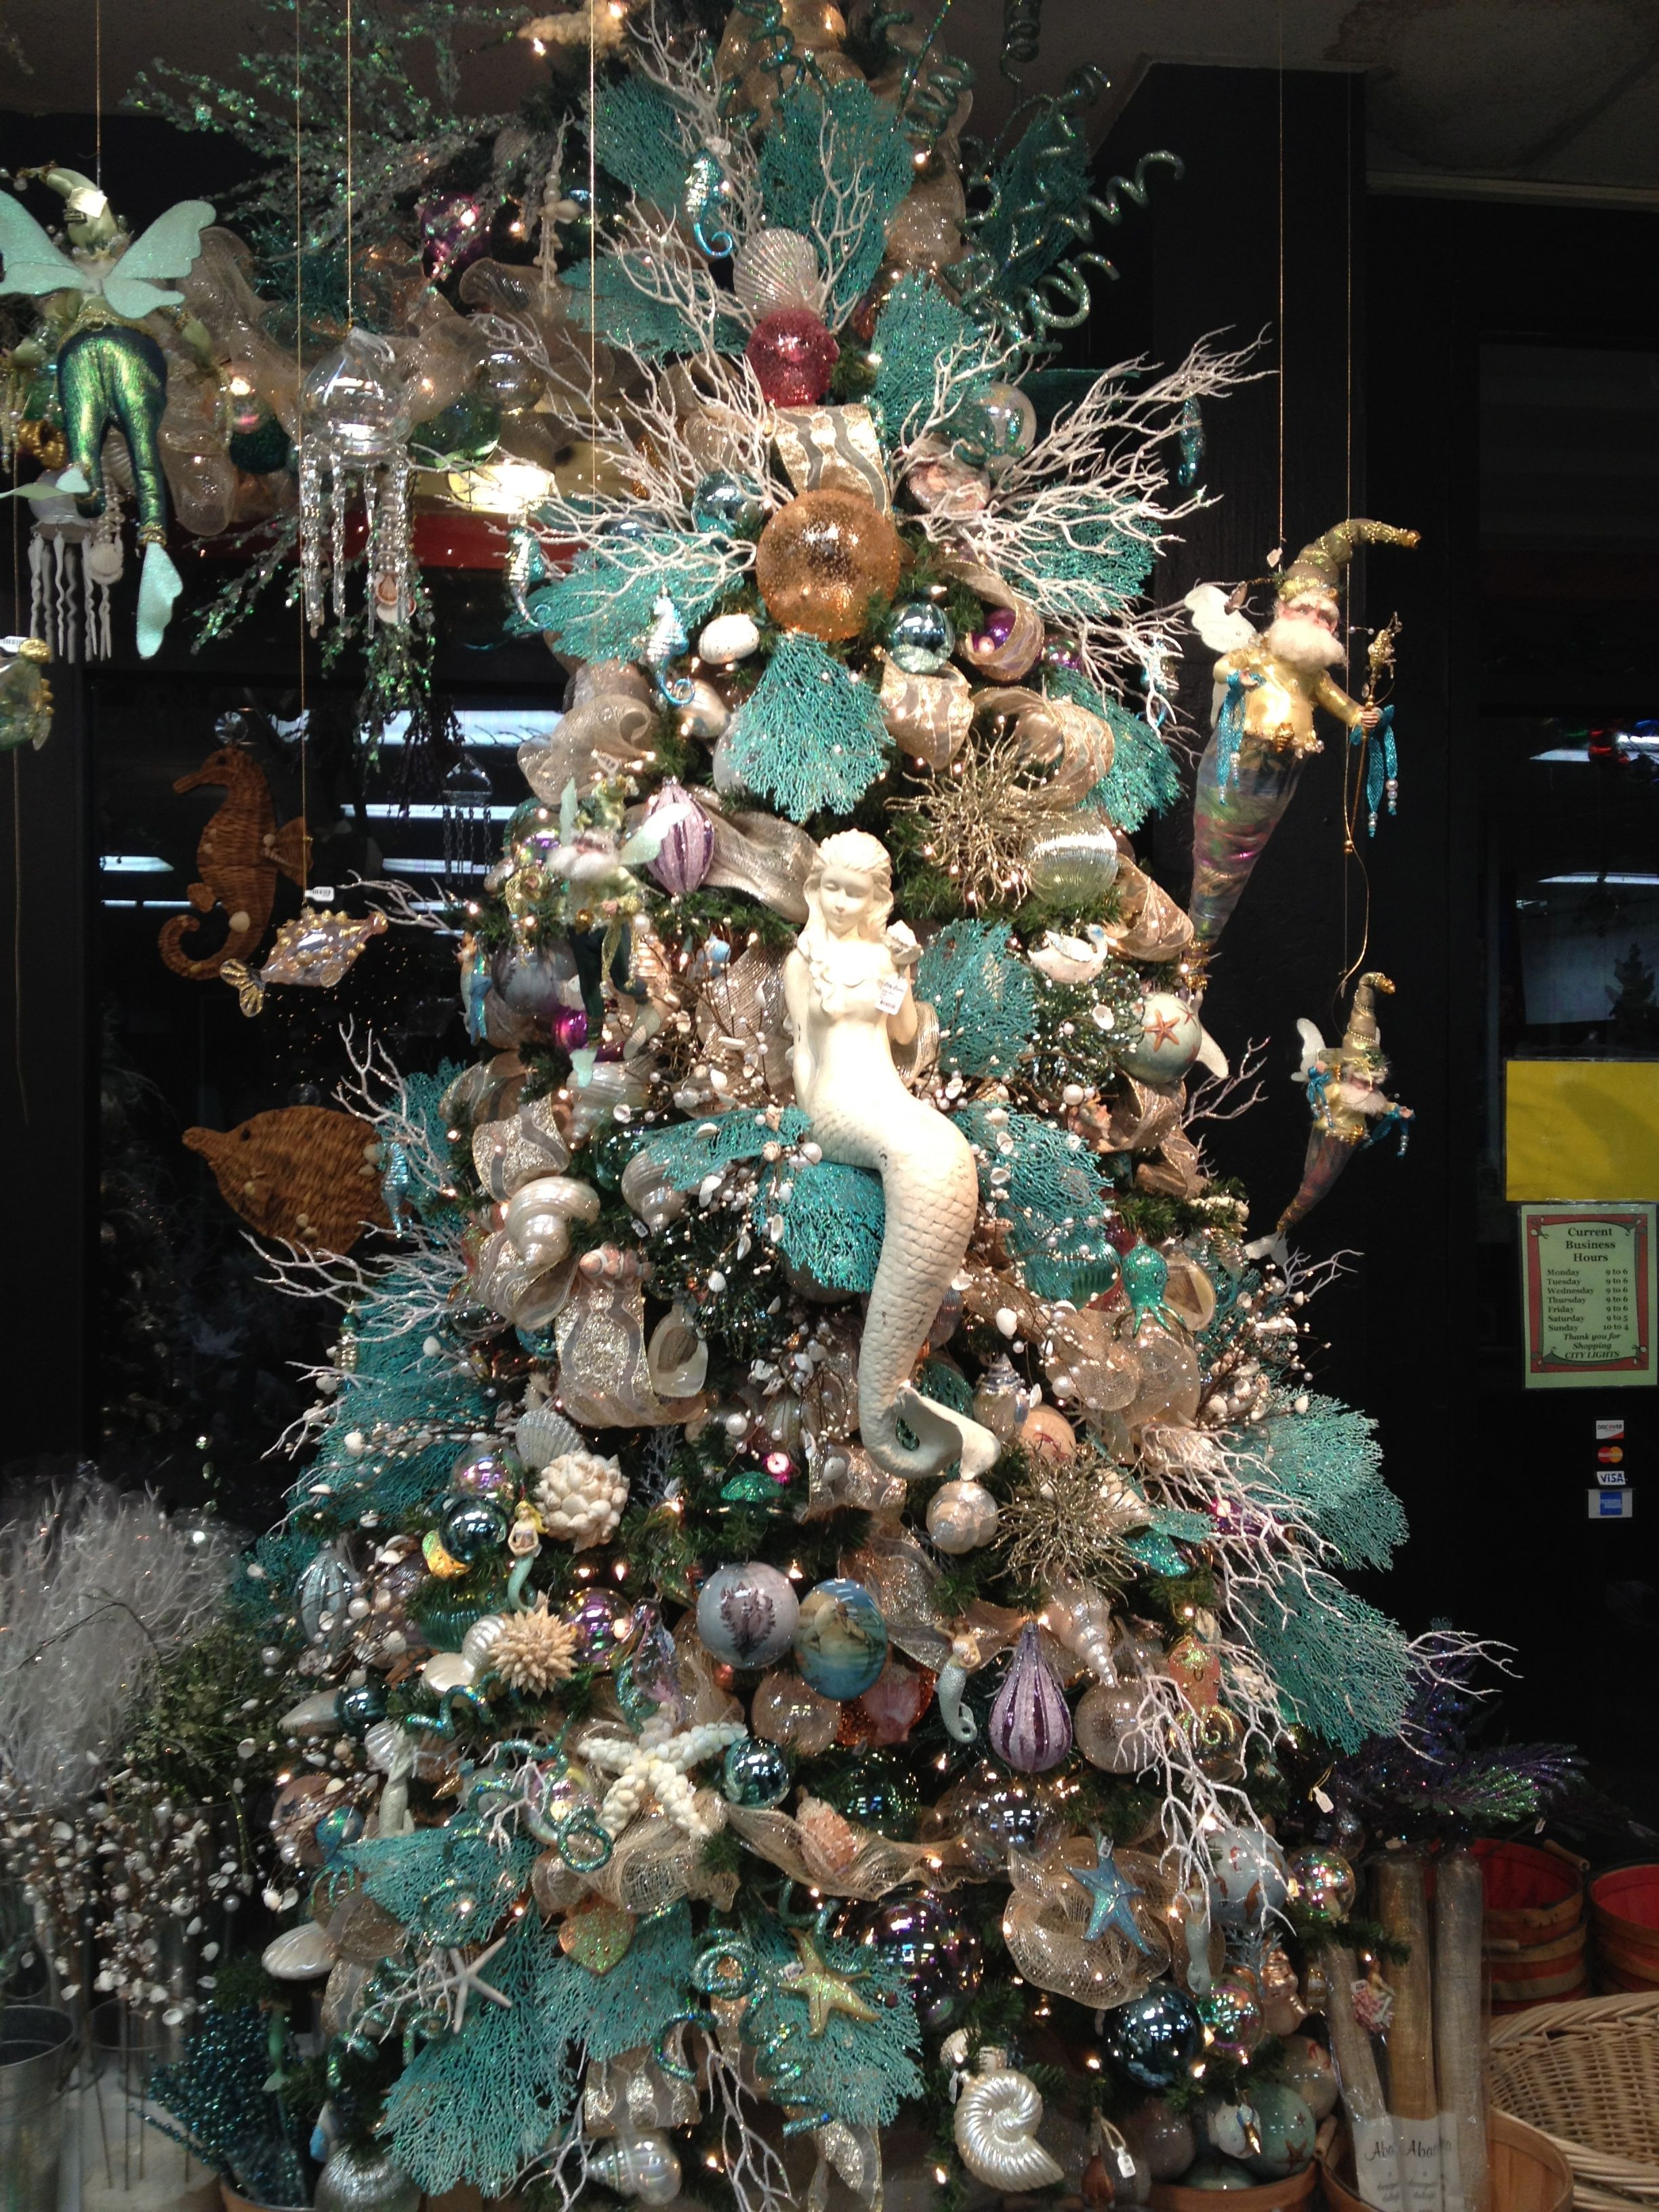 Pin By Theechristianandrew On Christmas Inspirations Around The House Mermaid Christmas Mermaid Christmas Tree Christmas Tree Themes